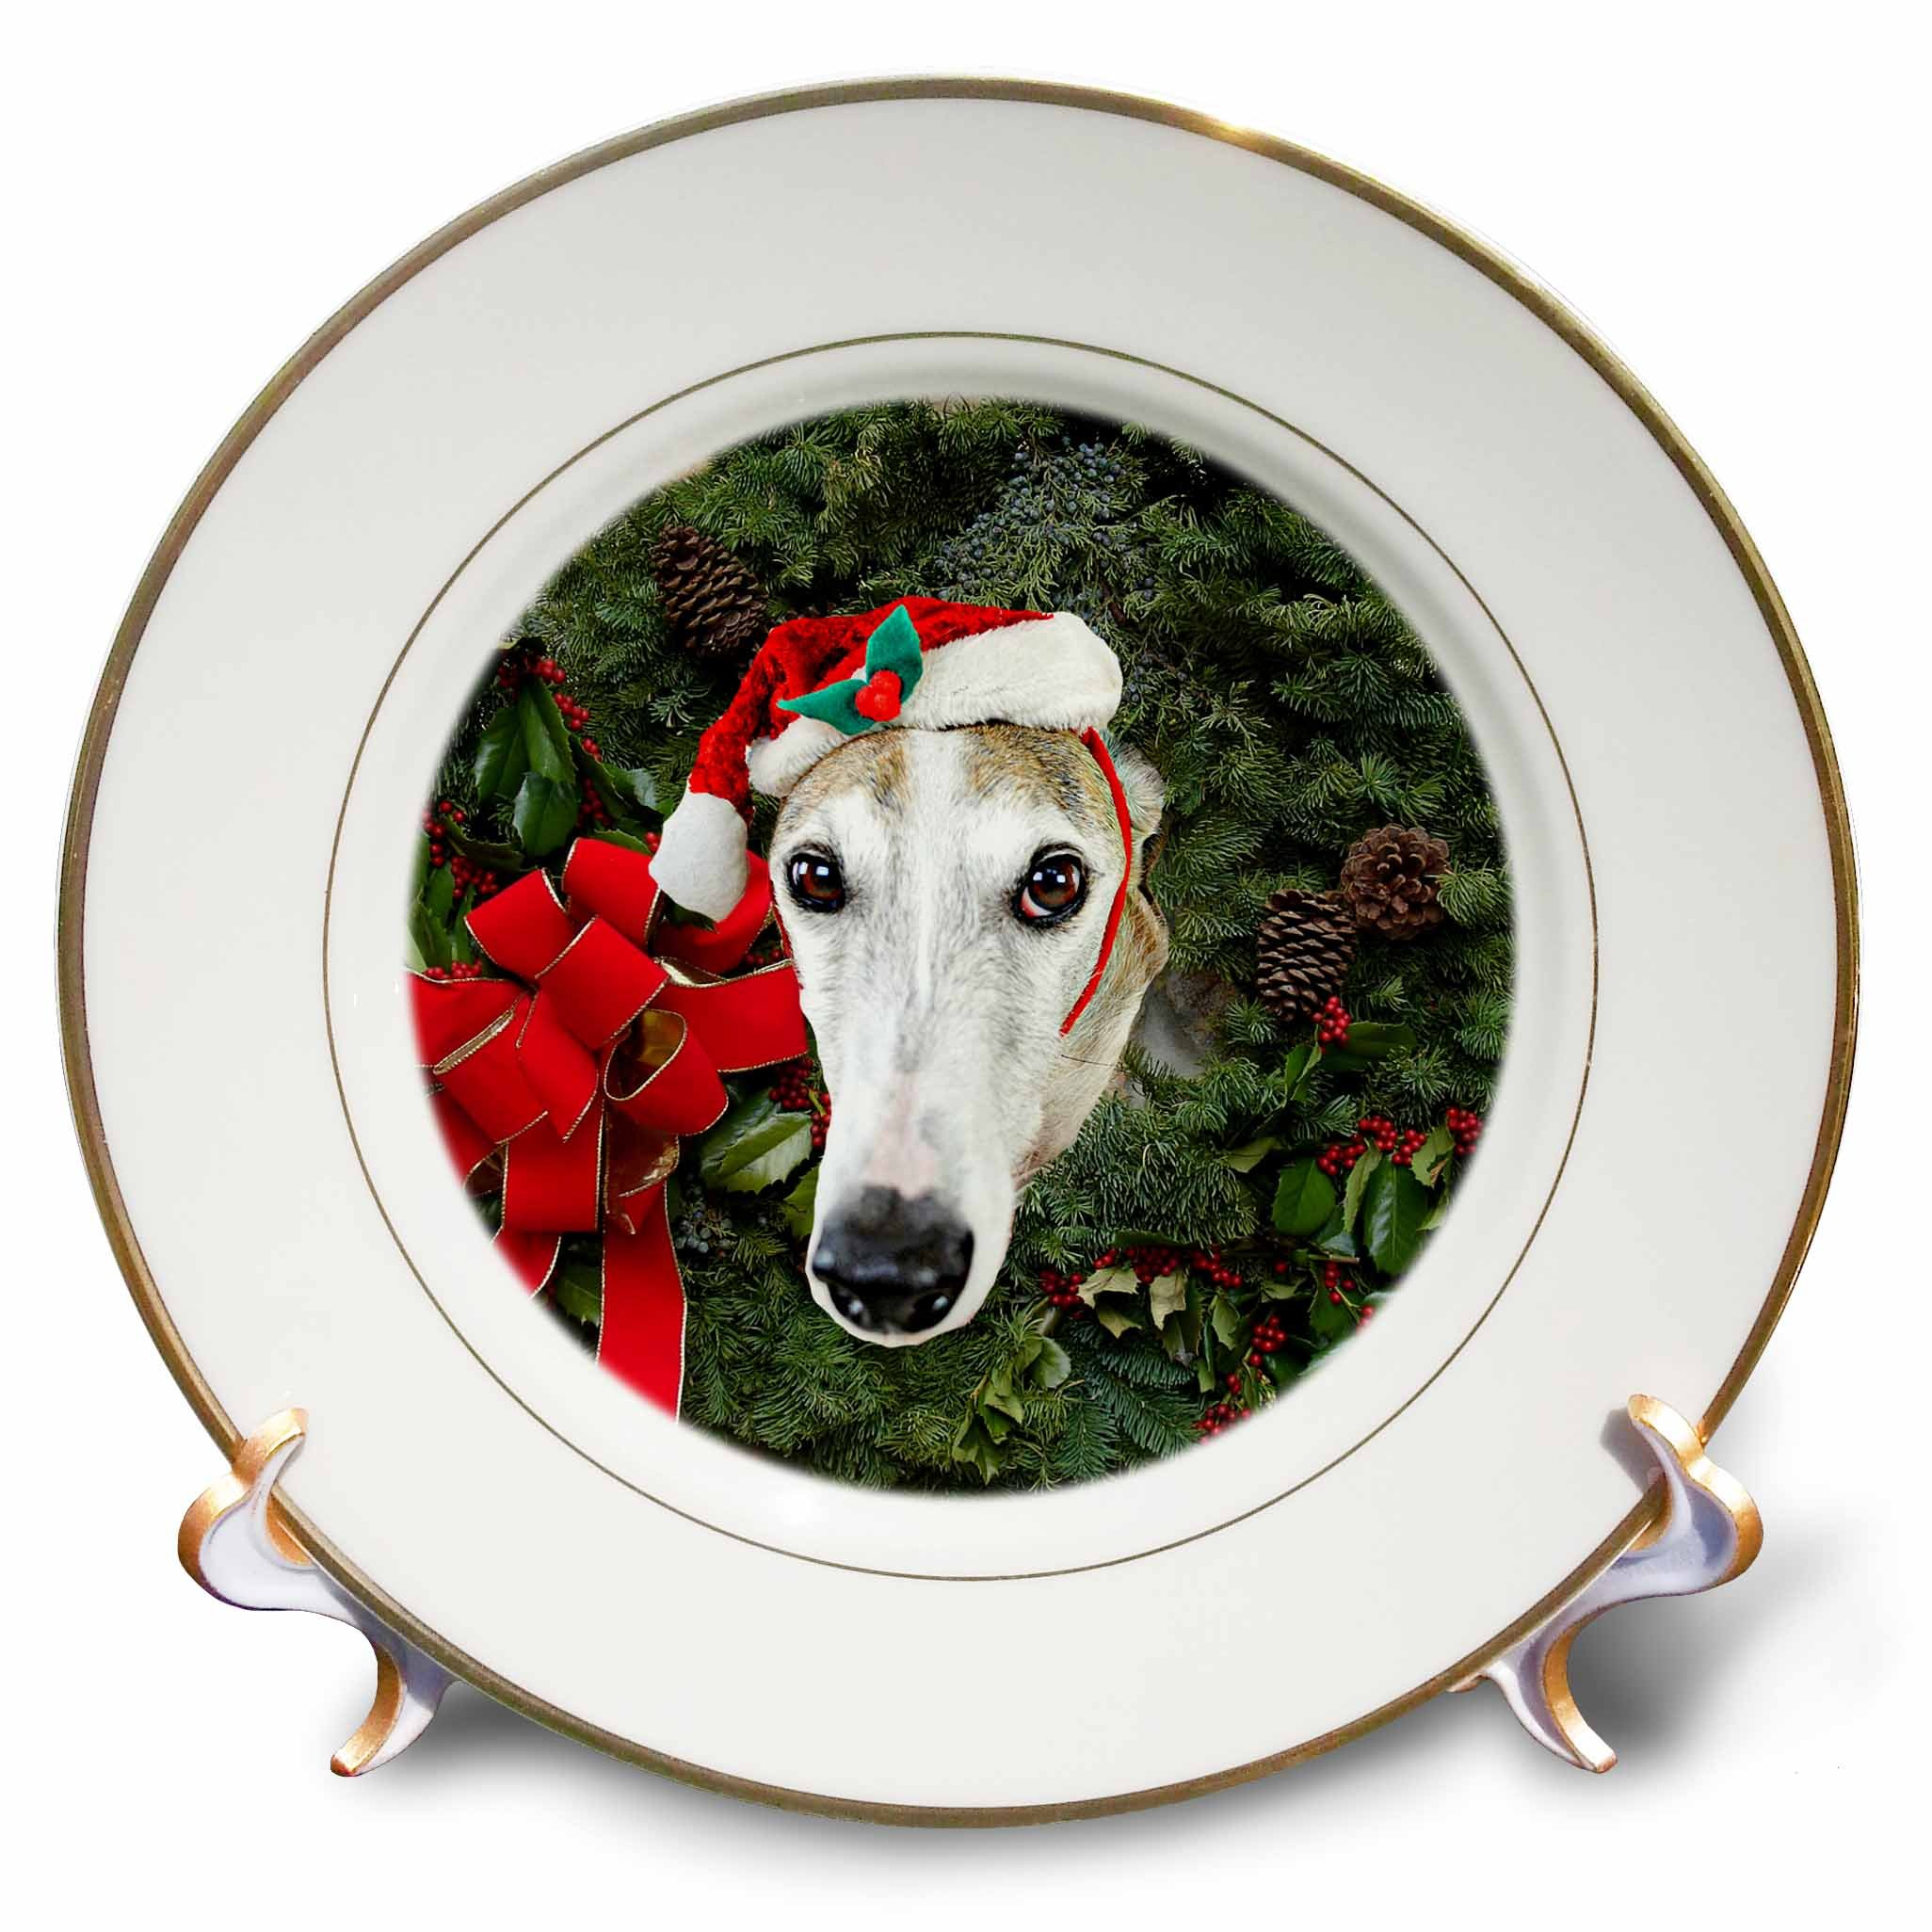 3dRose Sandy Mertens Christmas Animals - Christmas Wreath with a Greyhound Dog with Santa Hat in the Middle - 8 inch Porcelain Plate (cp_269520_1)